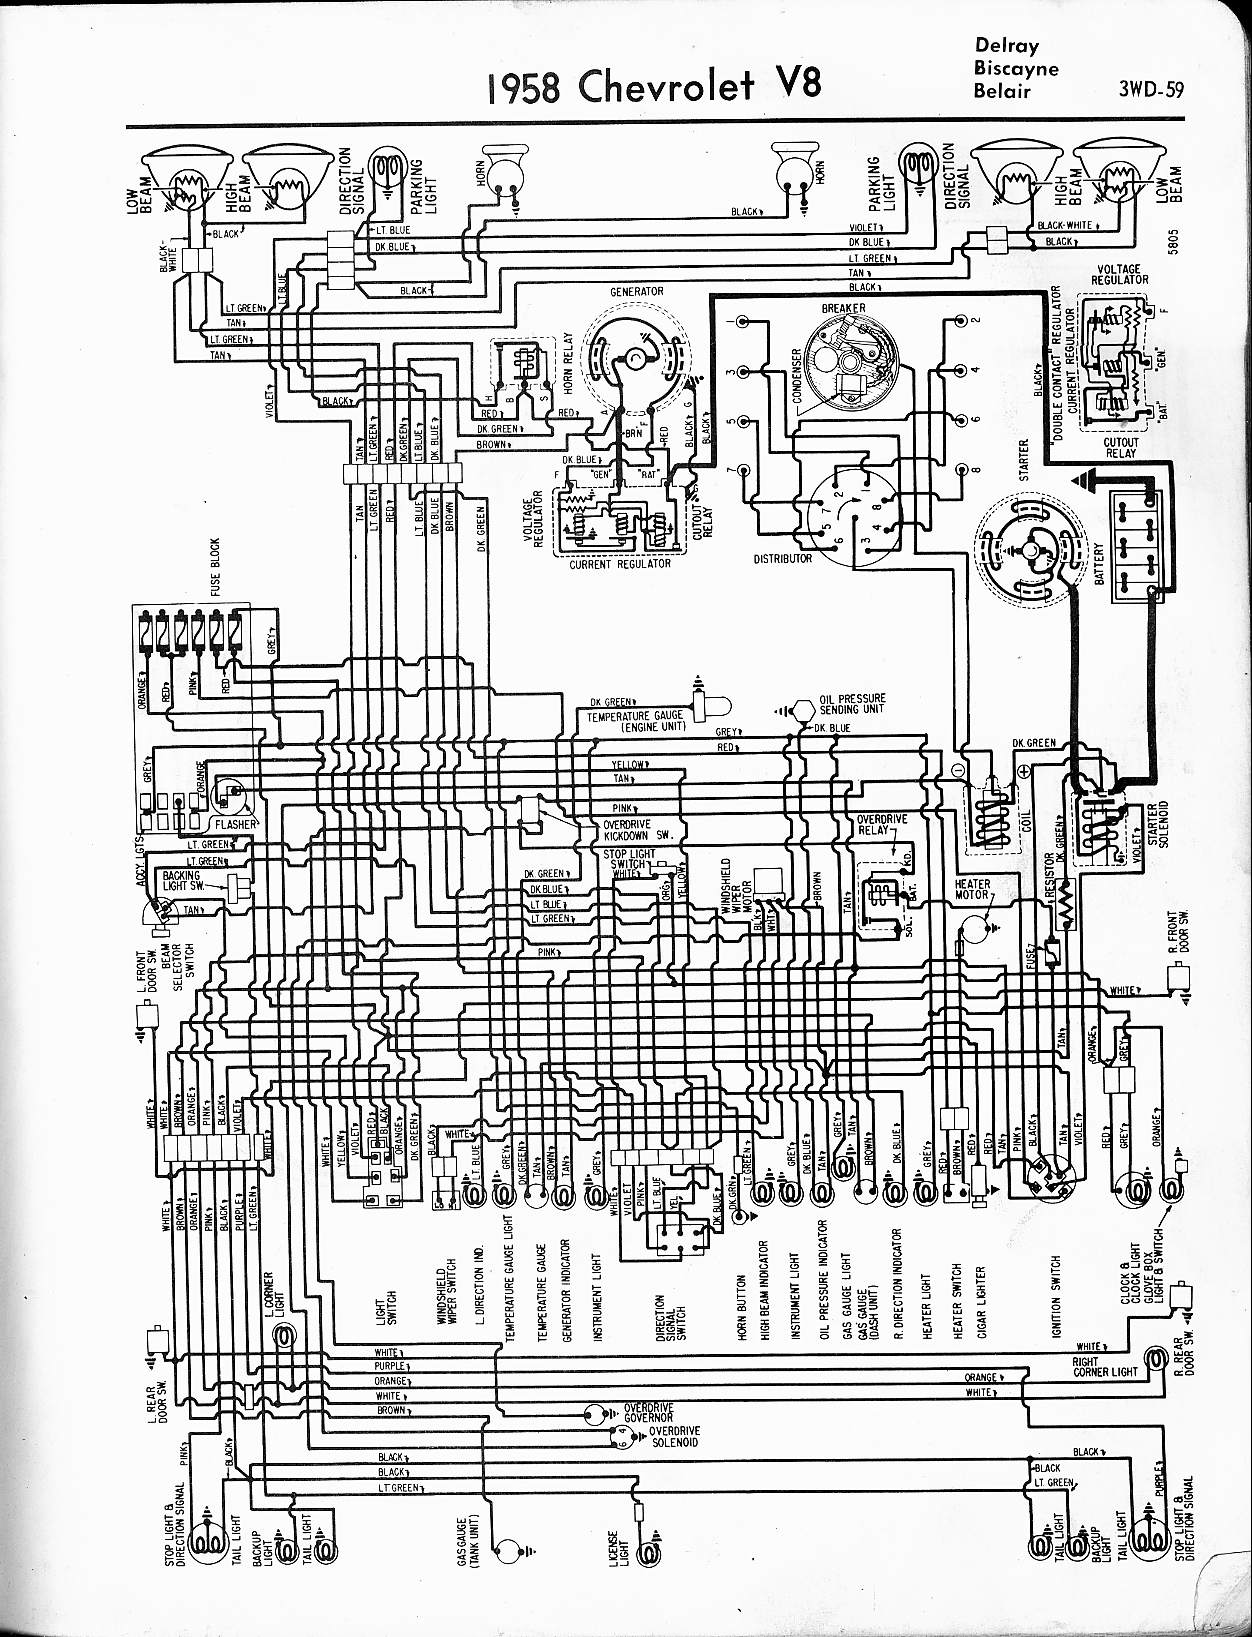 1963 chevrolet truck pickup complete 10 page set of factory electrical wiring diagrams schematics guide covers panel platform suburban low cab tilt cab light medium heavy duty truck ton ton 1 ton 1 ton 2 ton chevy 63